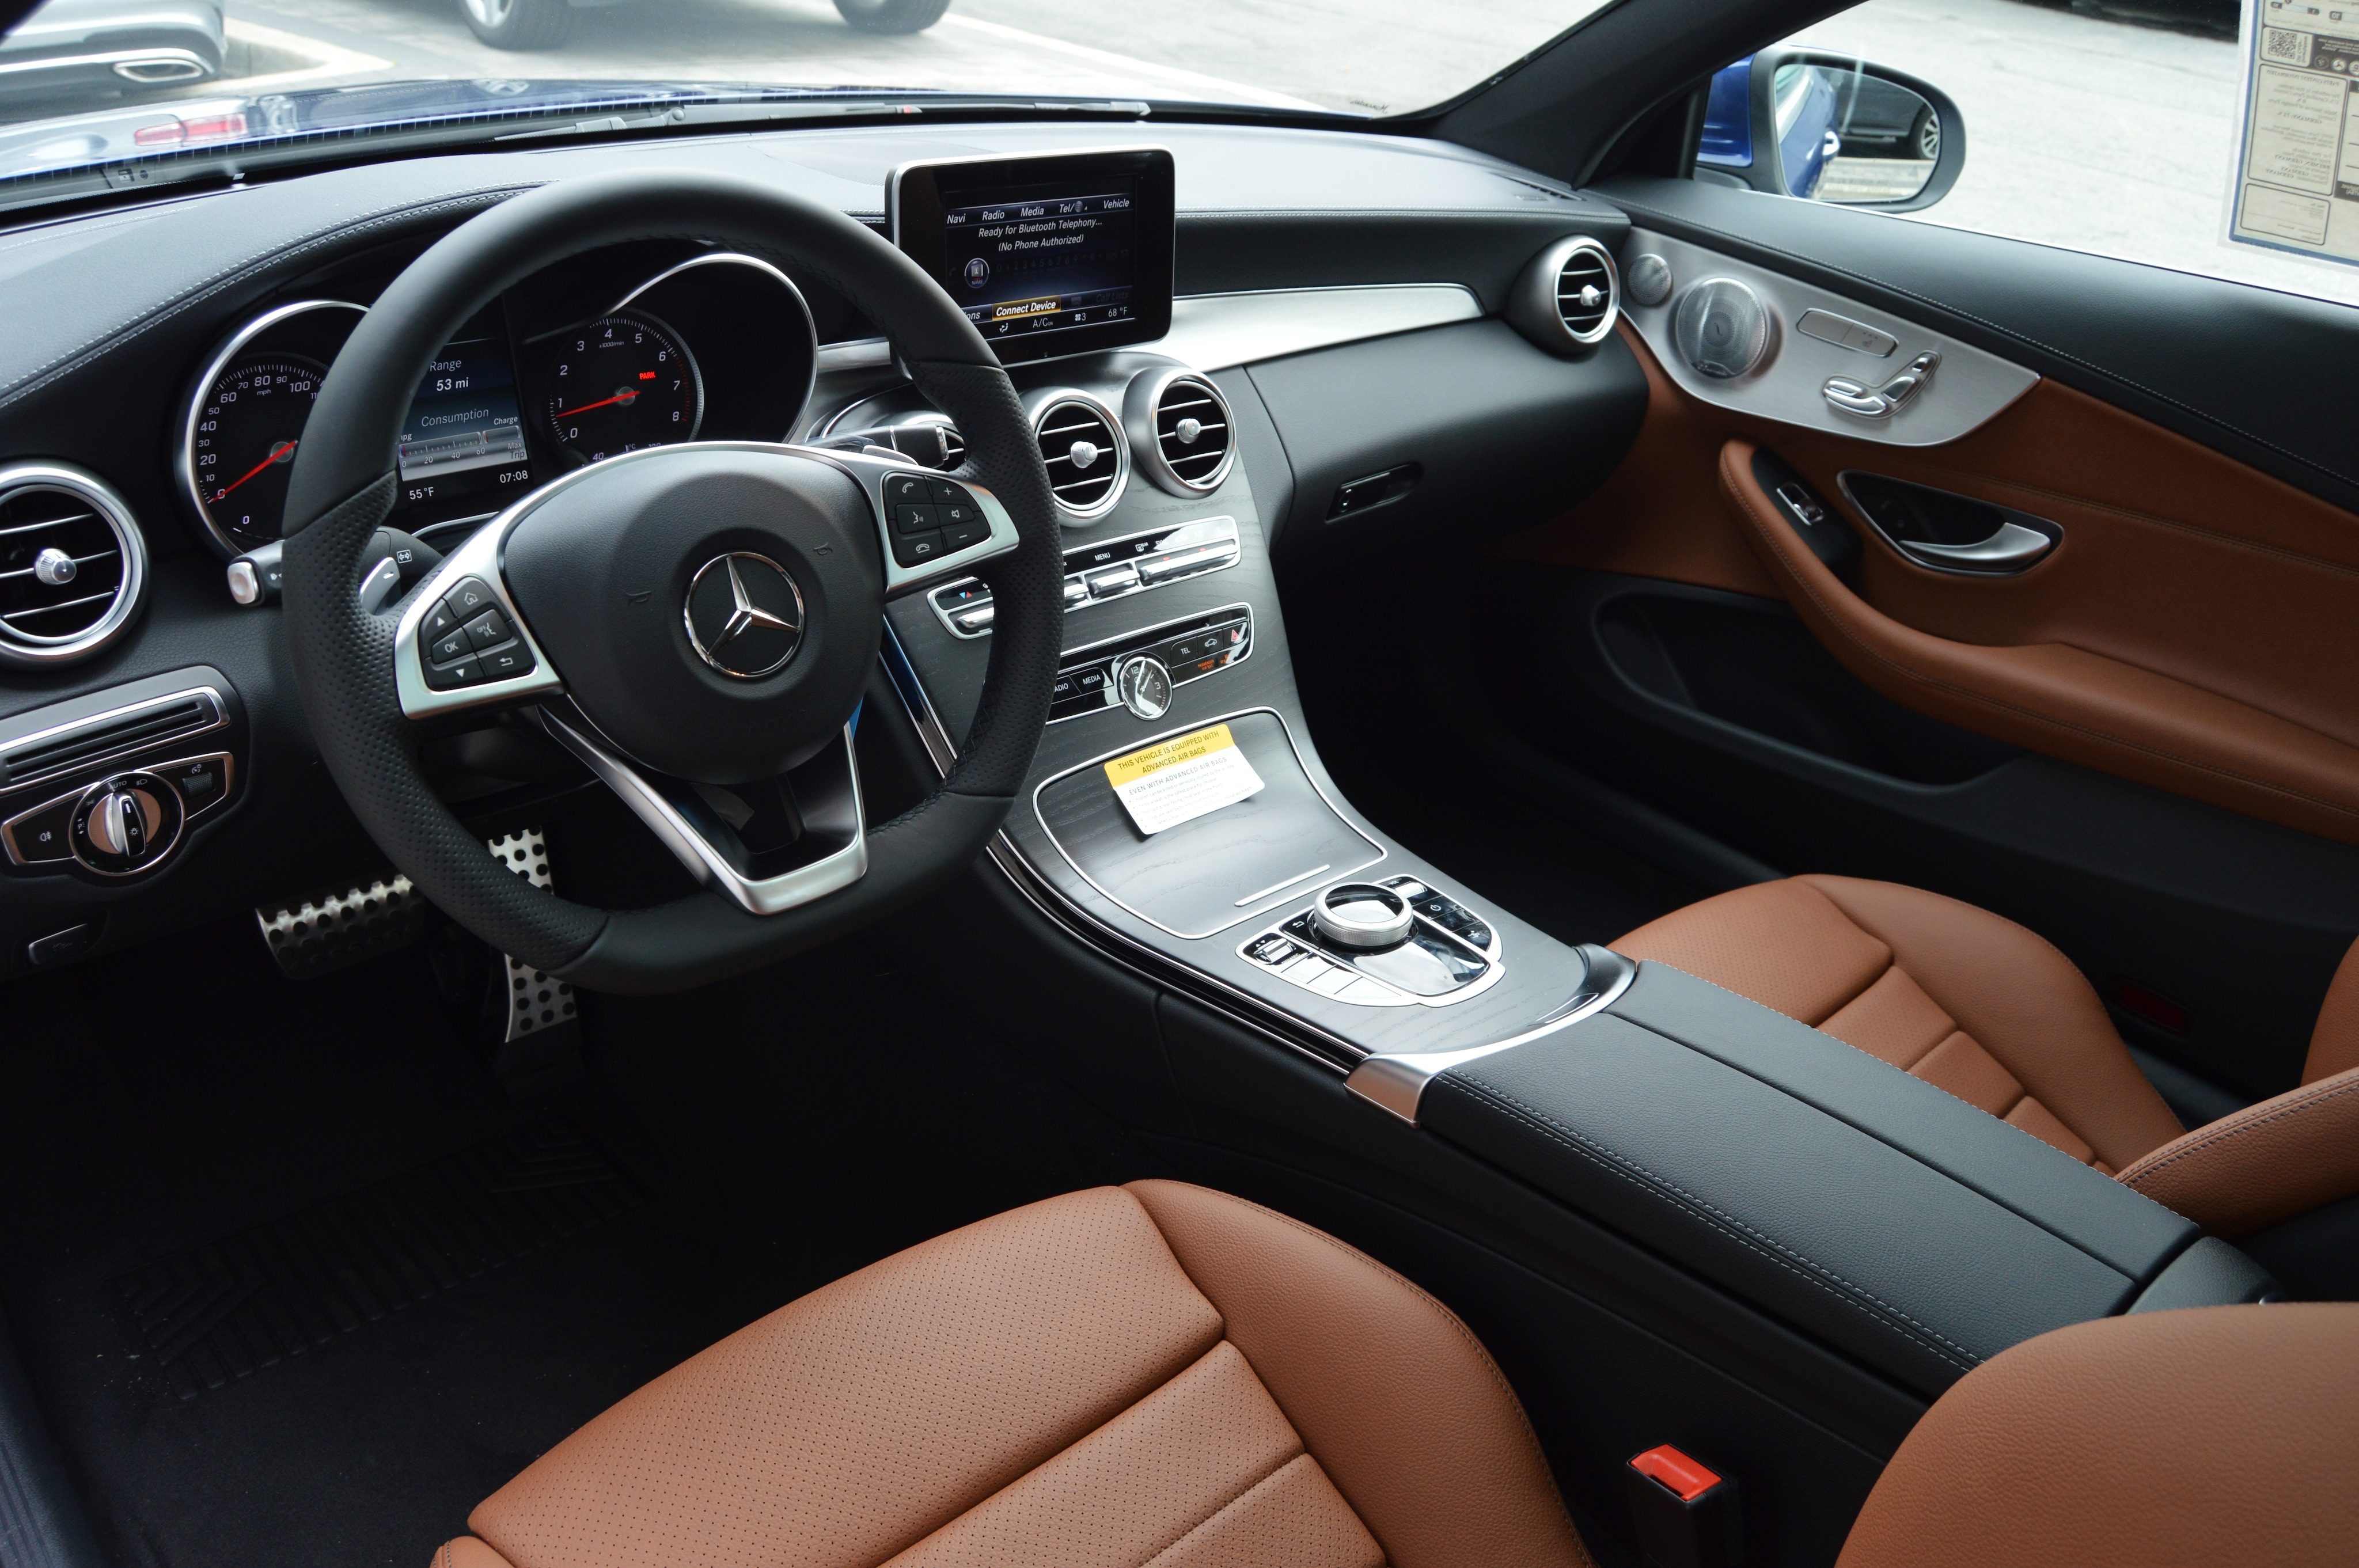 introducing the 2017 c-class coupe! | mercedes-benz of huntington